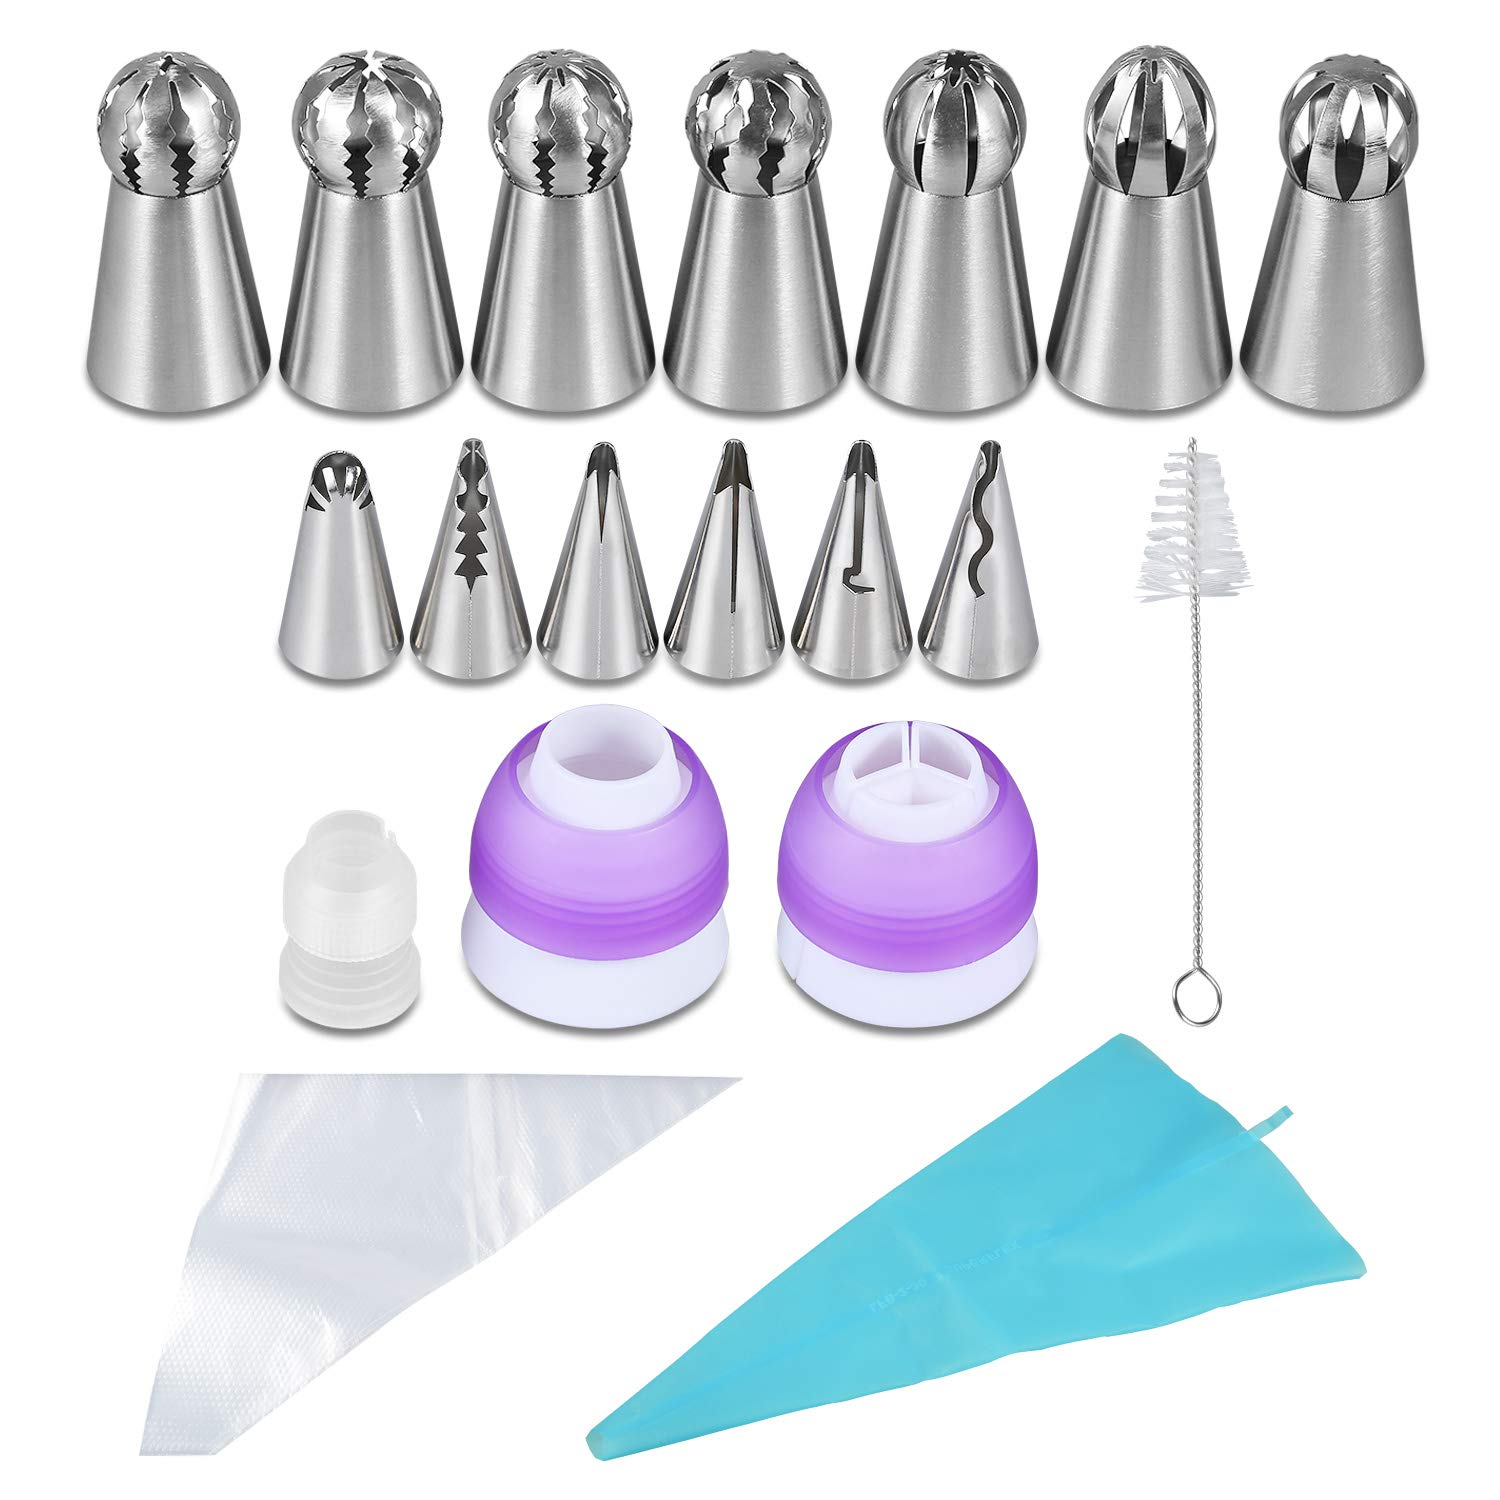 YUJUE 38 pcs ,Russian Piping Tips Set,Icing Tips Cake Decoration Tips, 7 NEW Russian Ball Tips, 6 Russian Piping Nozzles, 3 Couplers, 1 Silicone Bag,1 Brush and 20 Disposable Pastry Bags